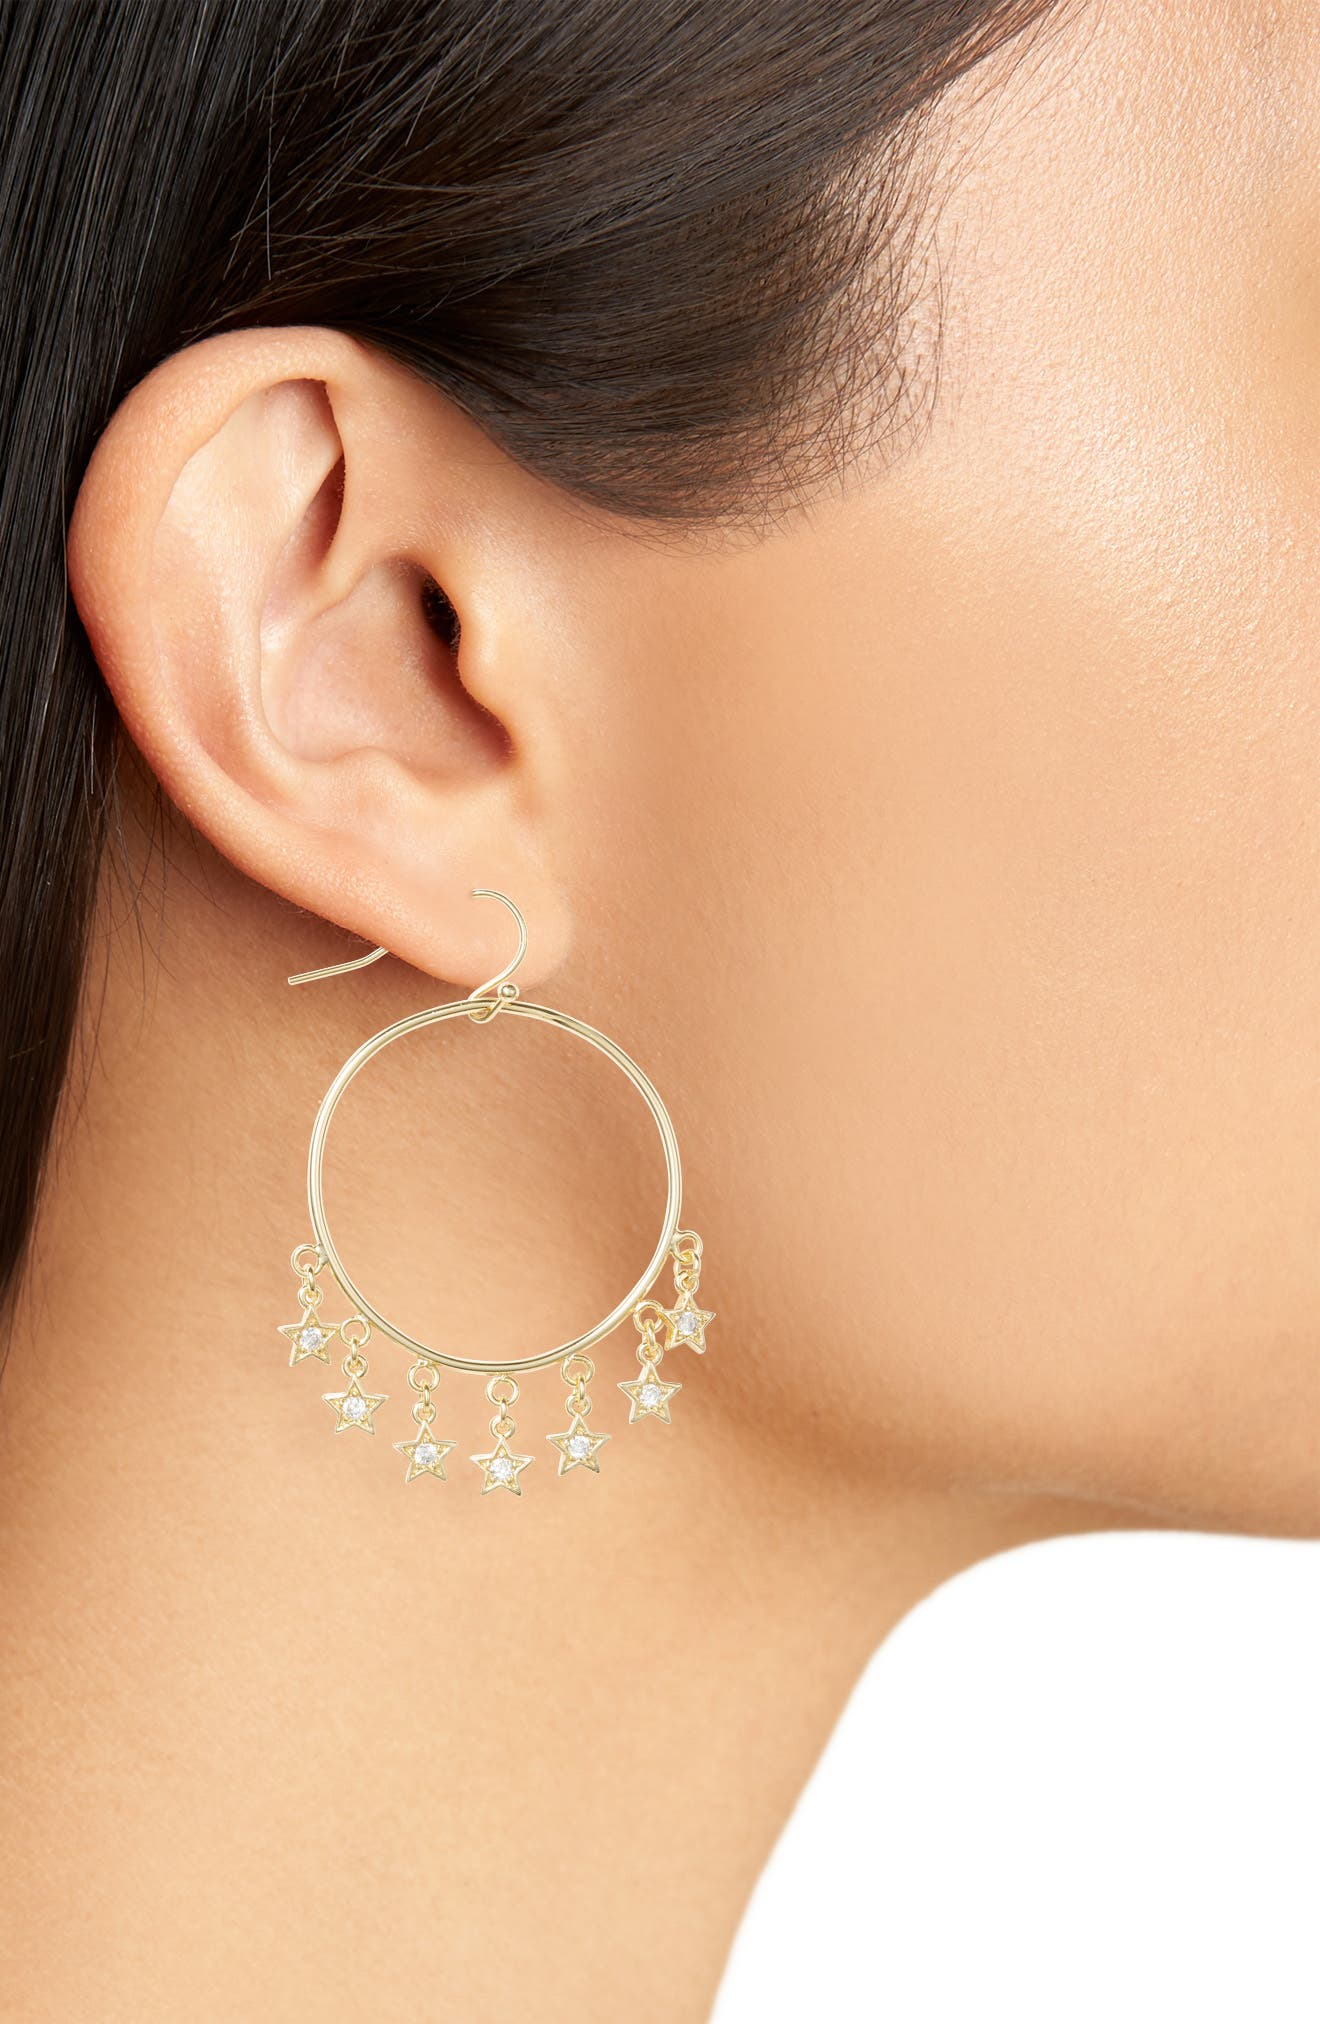 Star Shooter Hoop Earrings,                             Alternate thumbnail 2, color,                             CZ/ GOLD